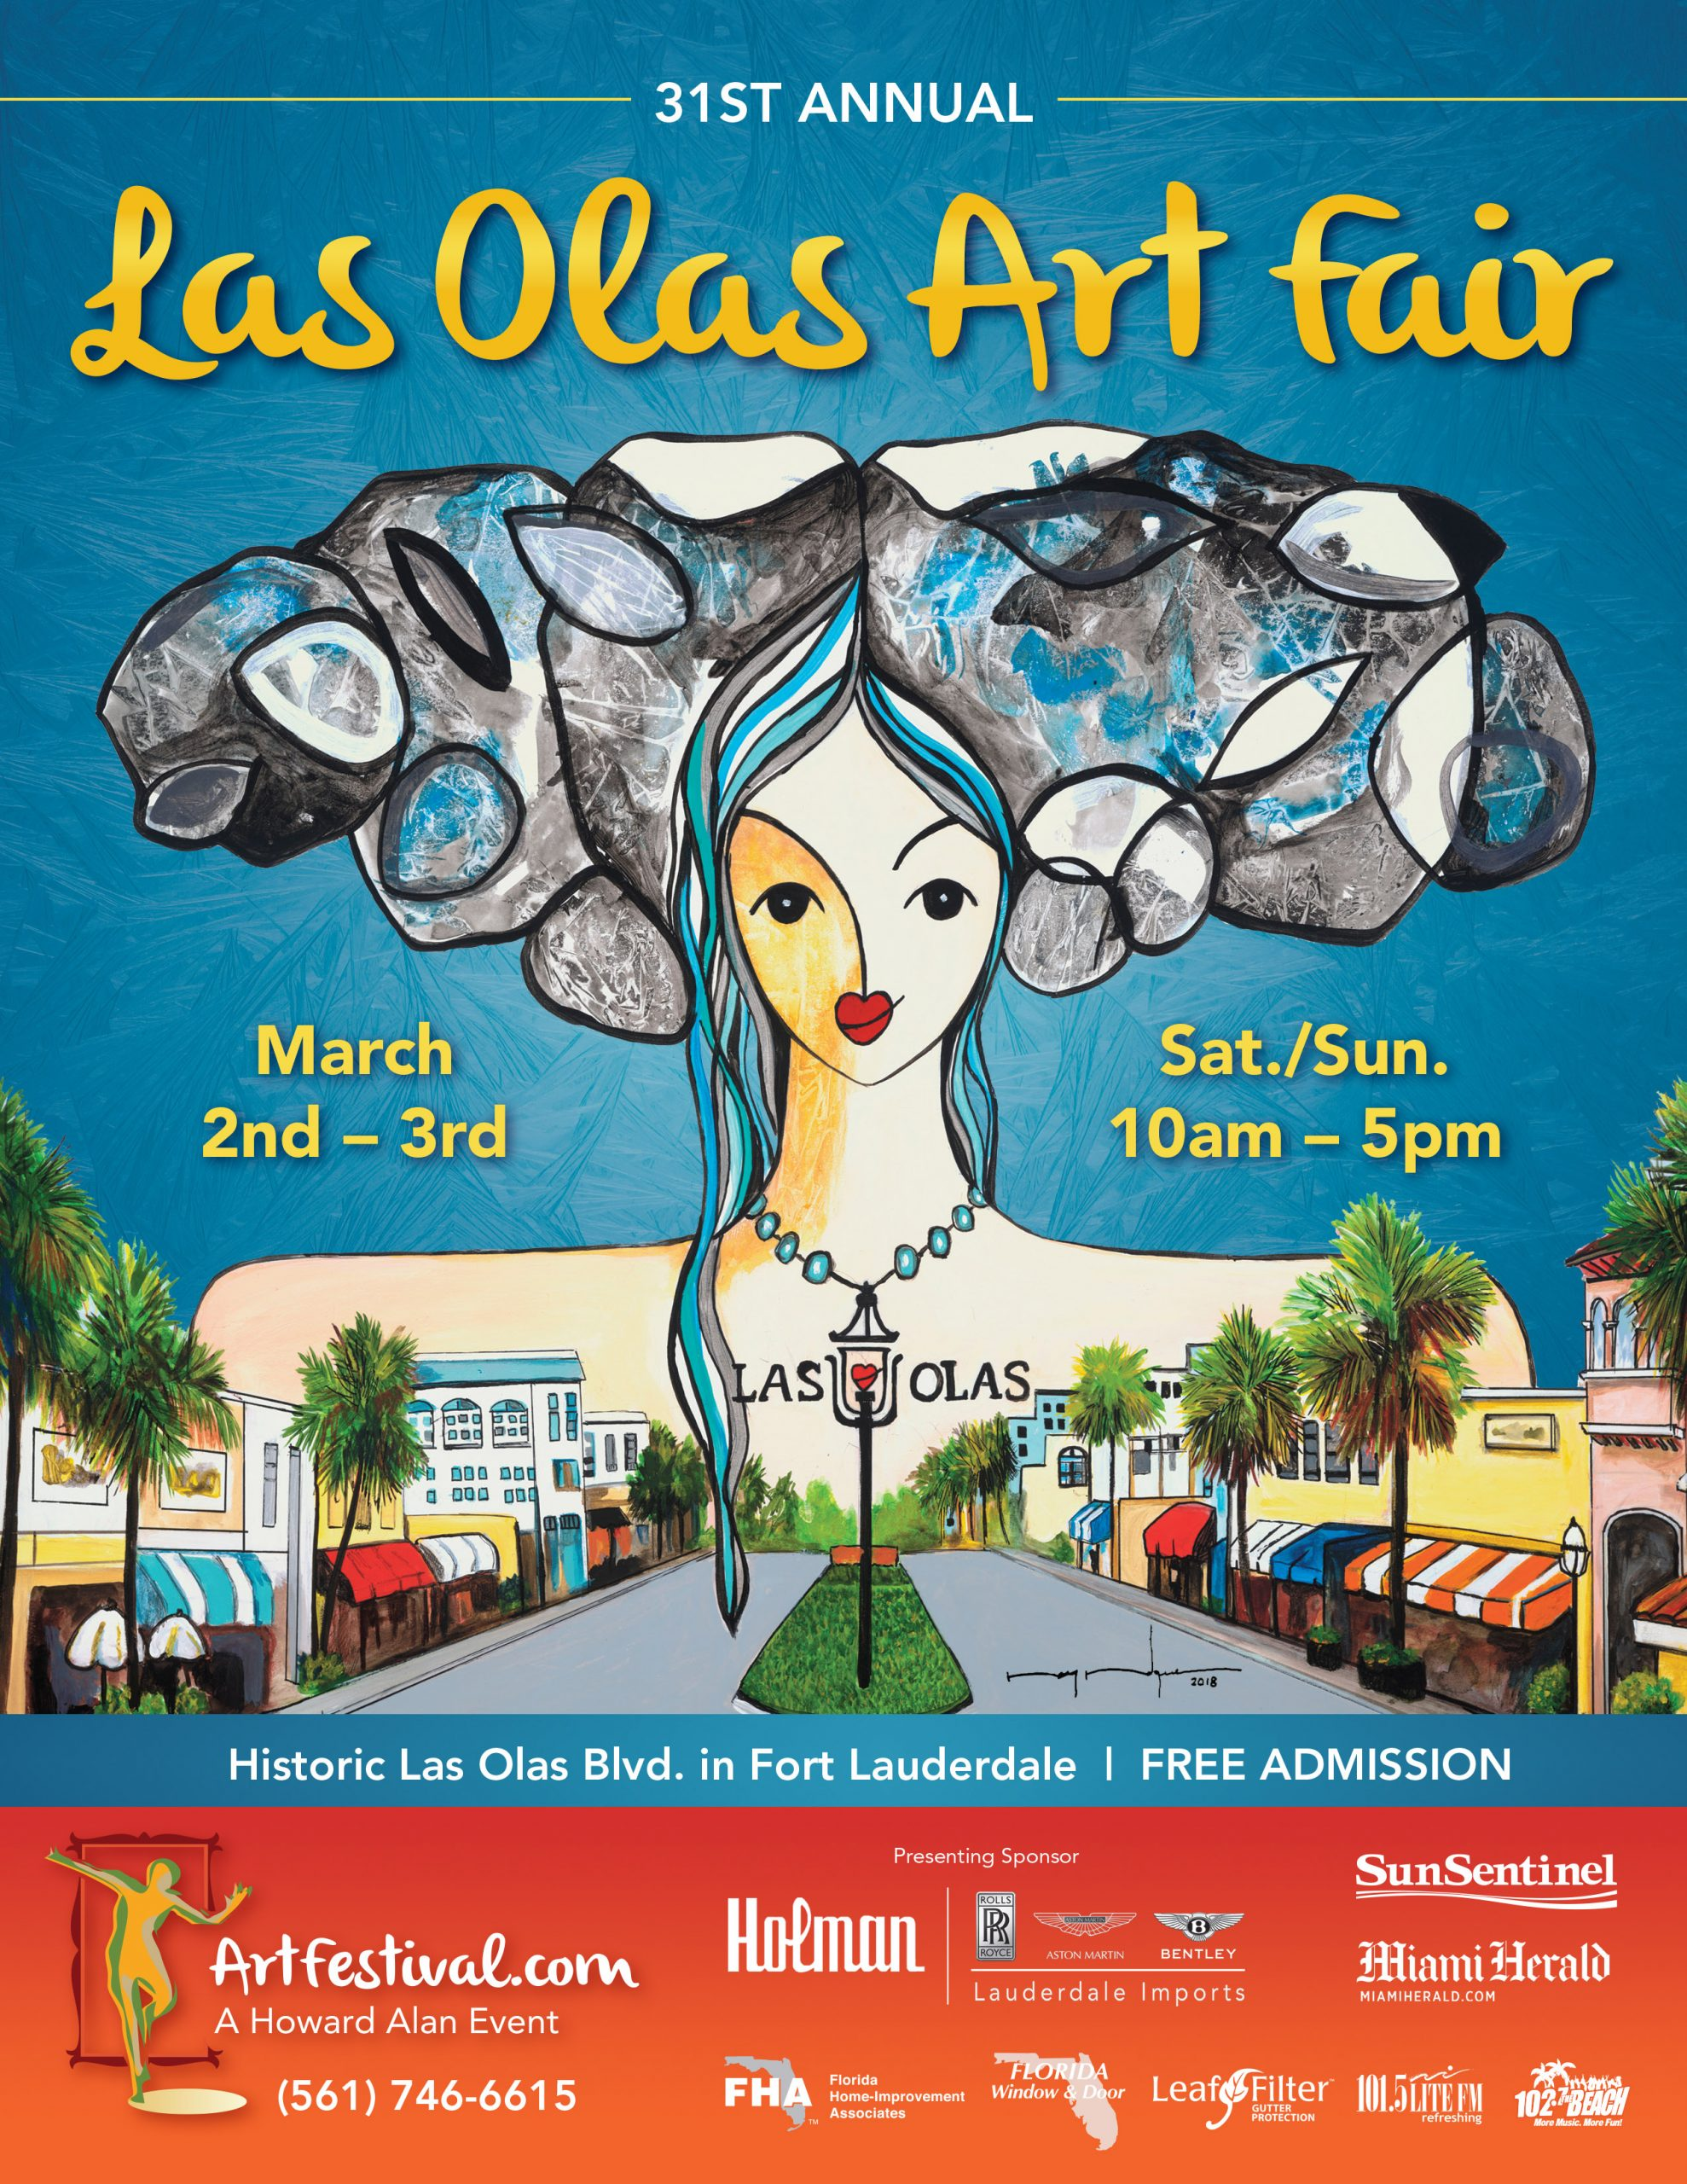 Las Olas Art Fair Part II